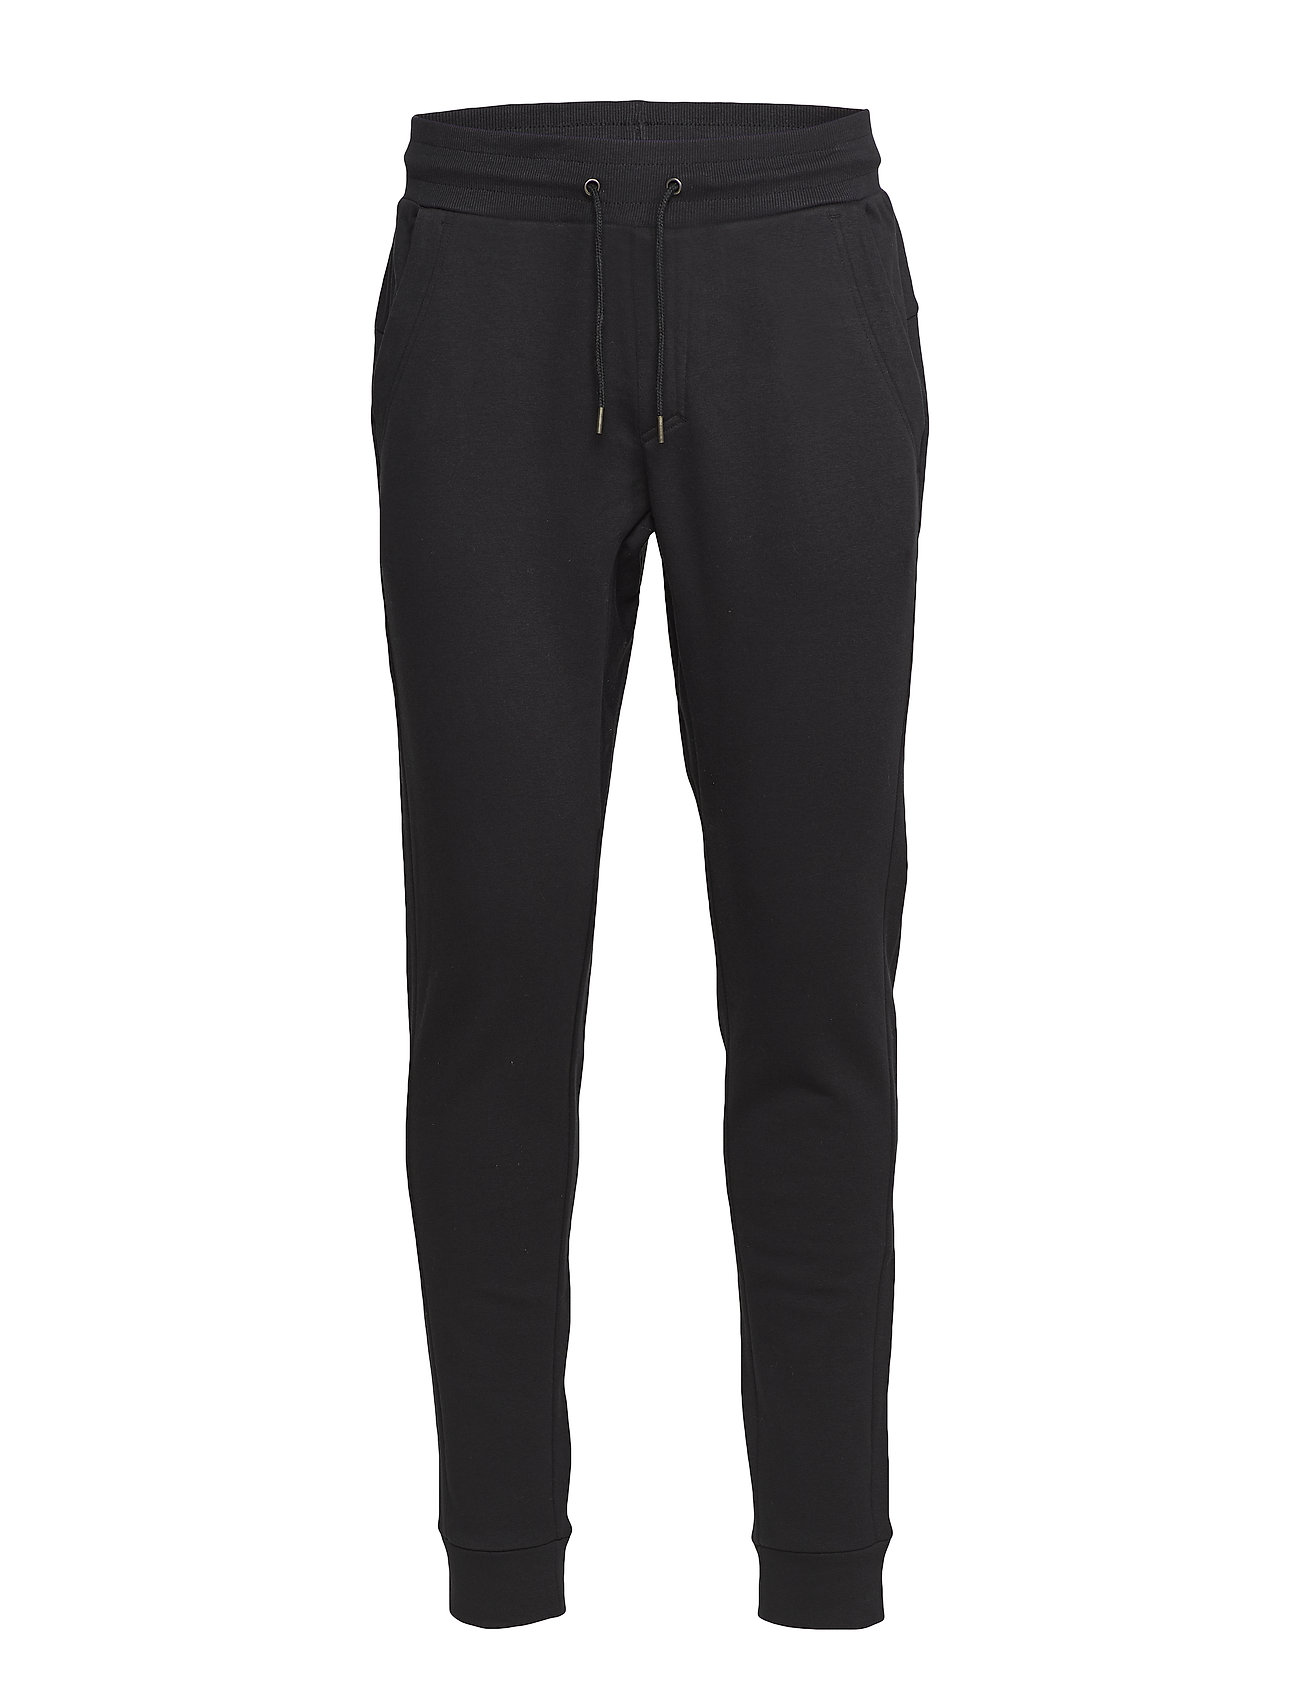 Björn Borg PANT BBCENTRE BBCENTRE - BLACK BEAUTY